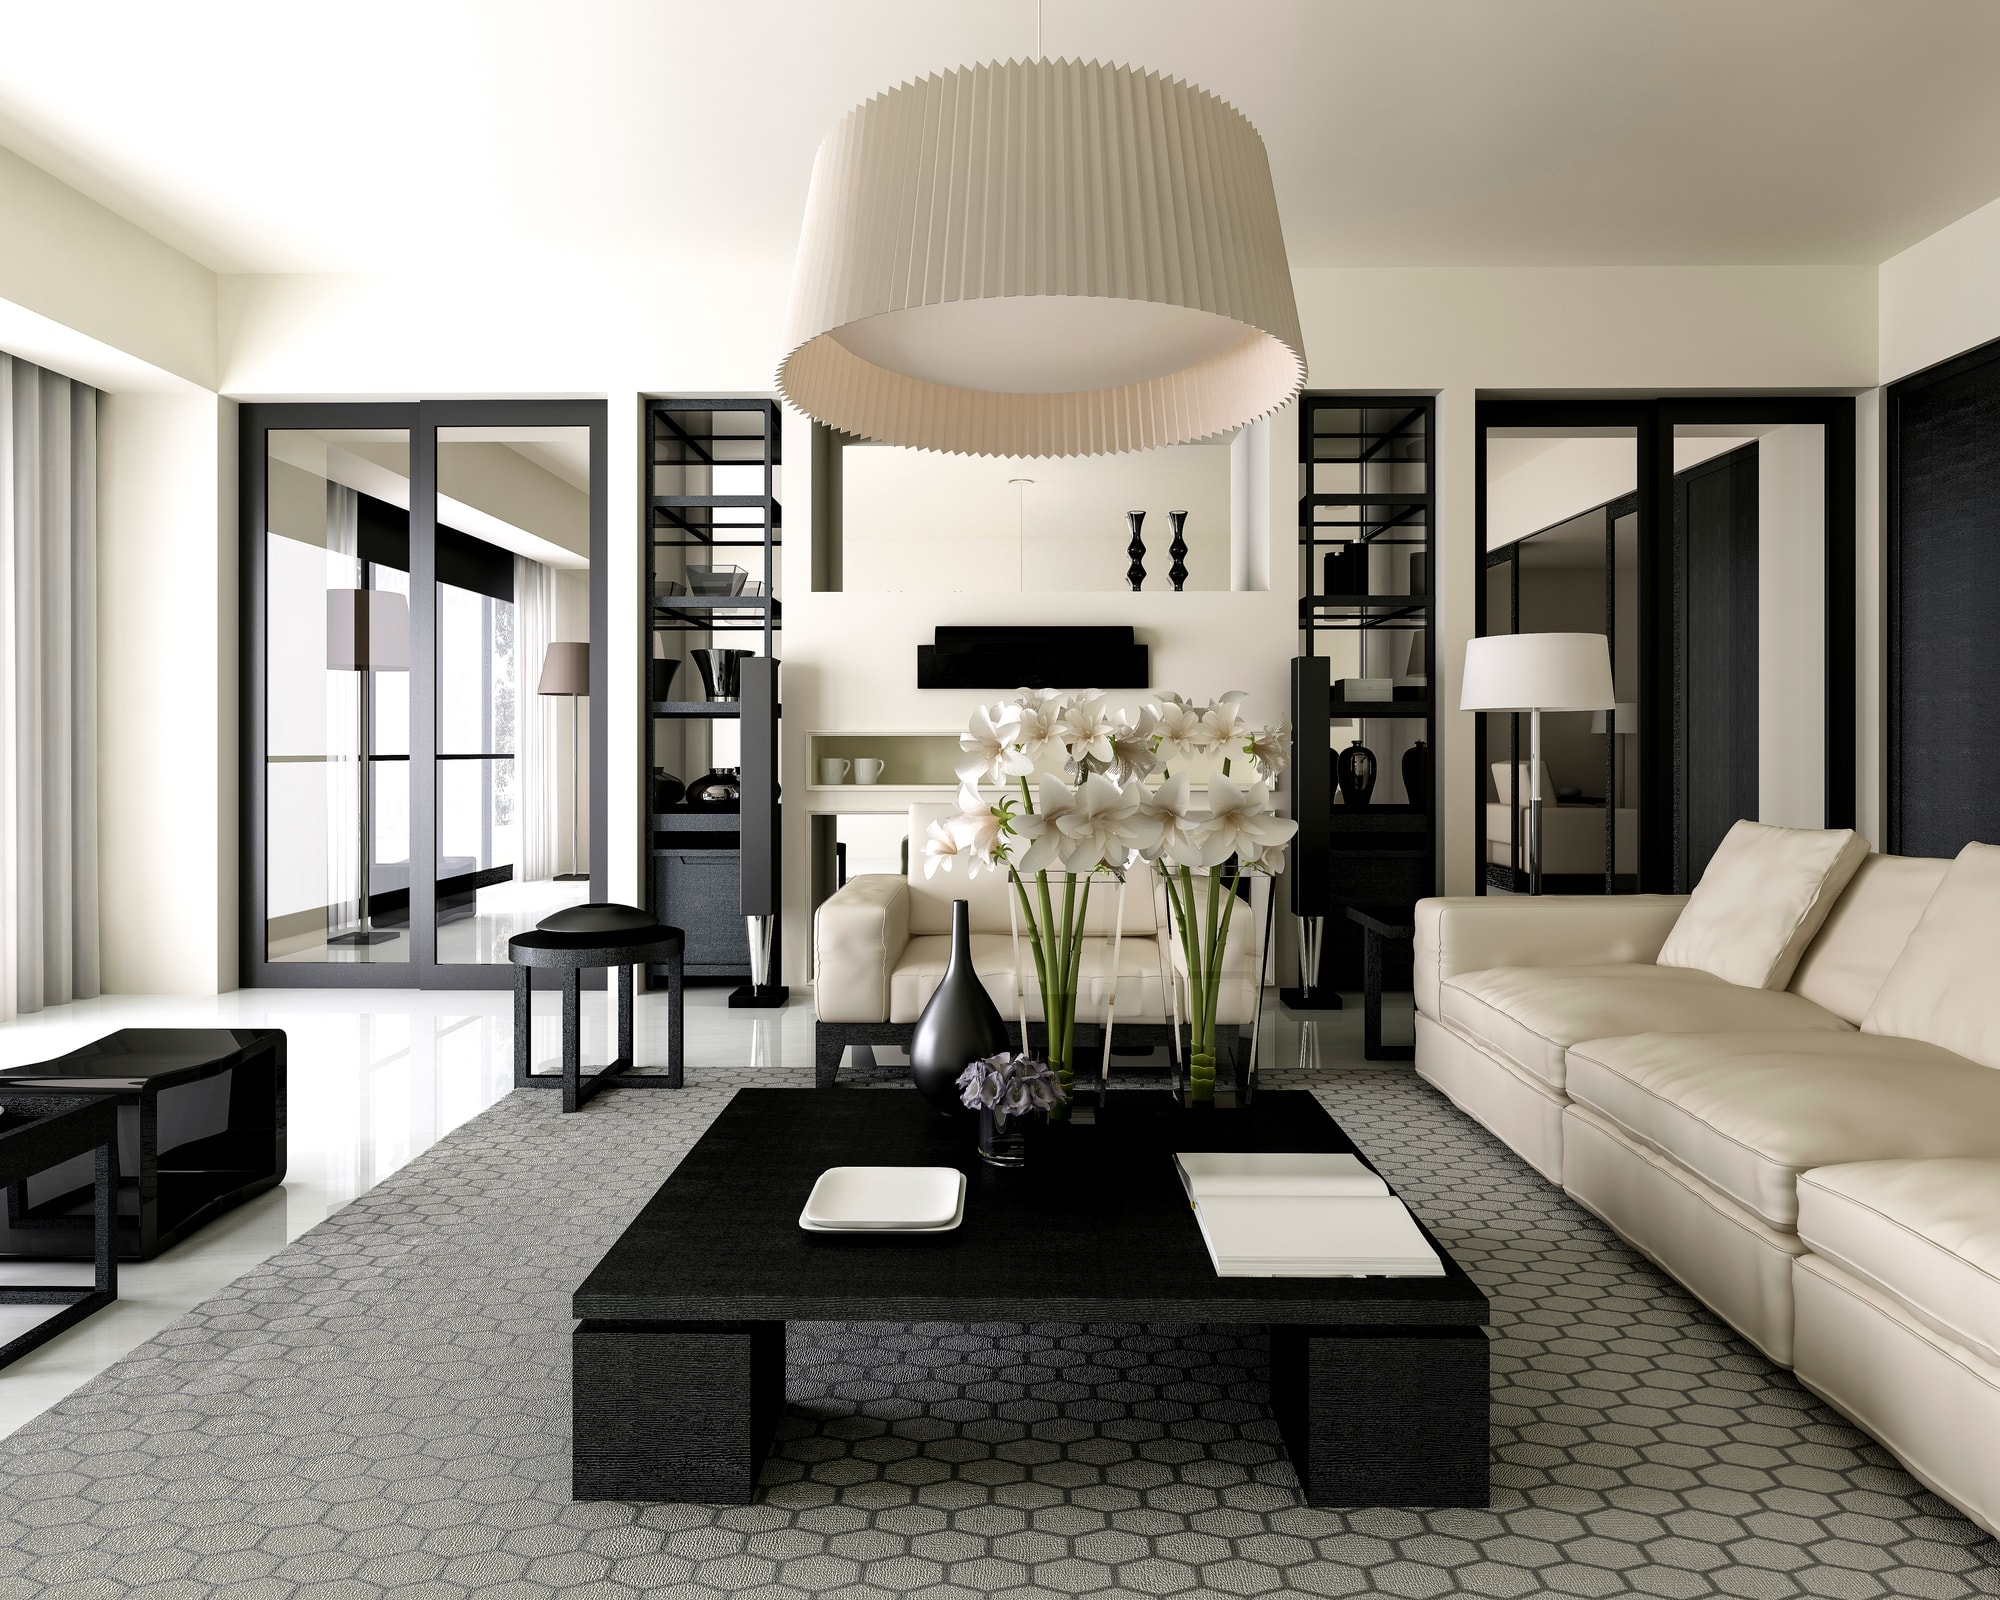 Luxury living room with cream and black furnishings